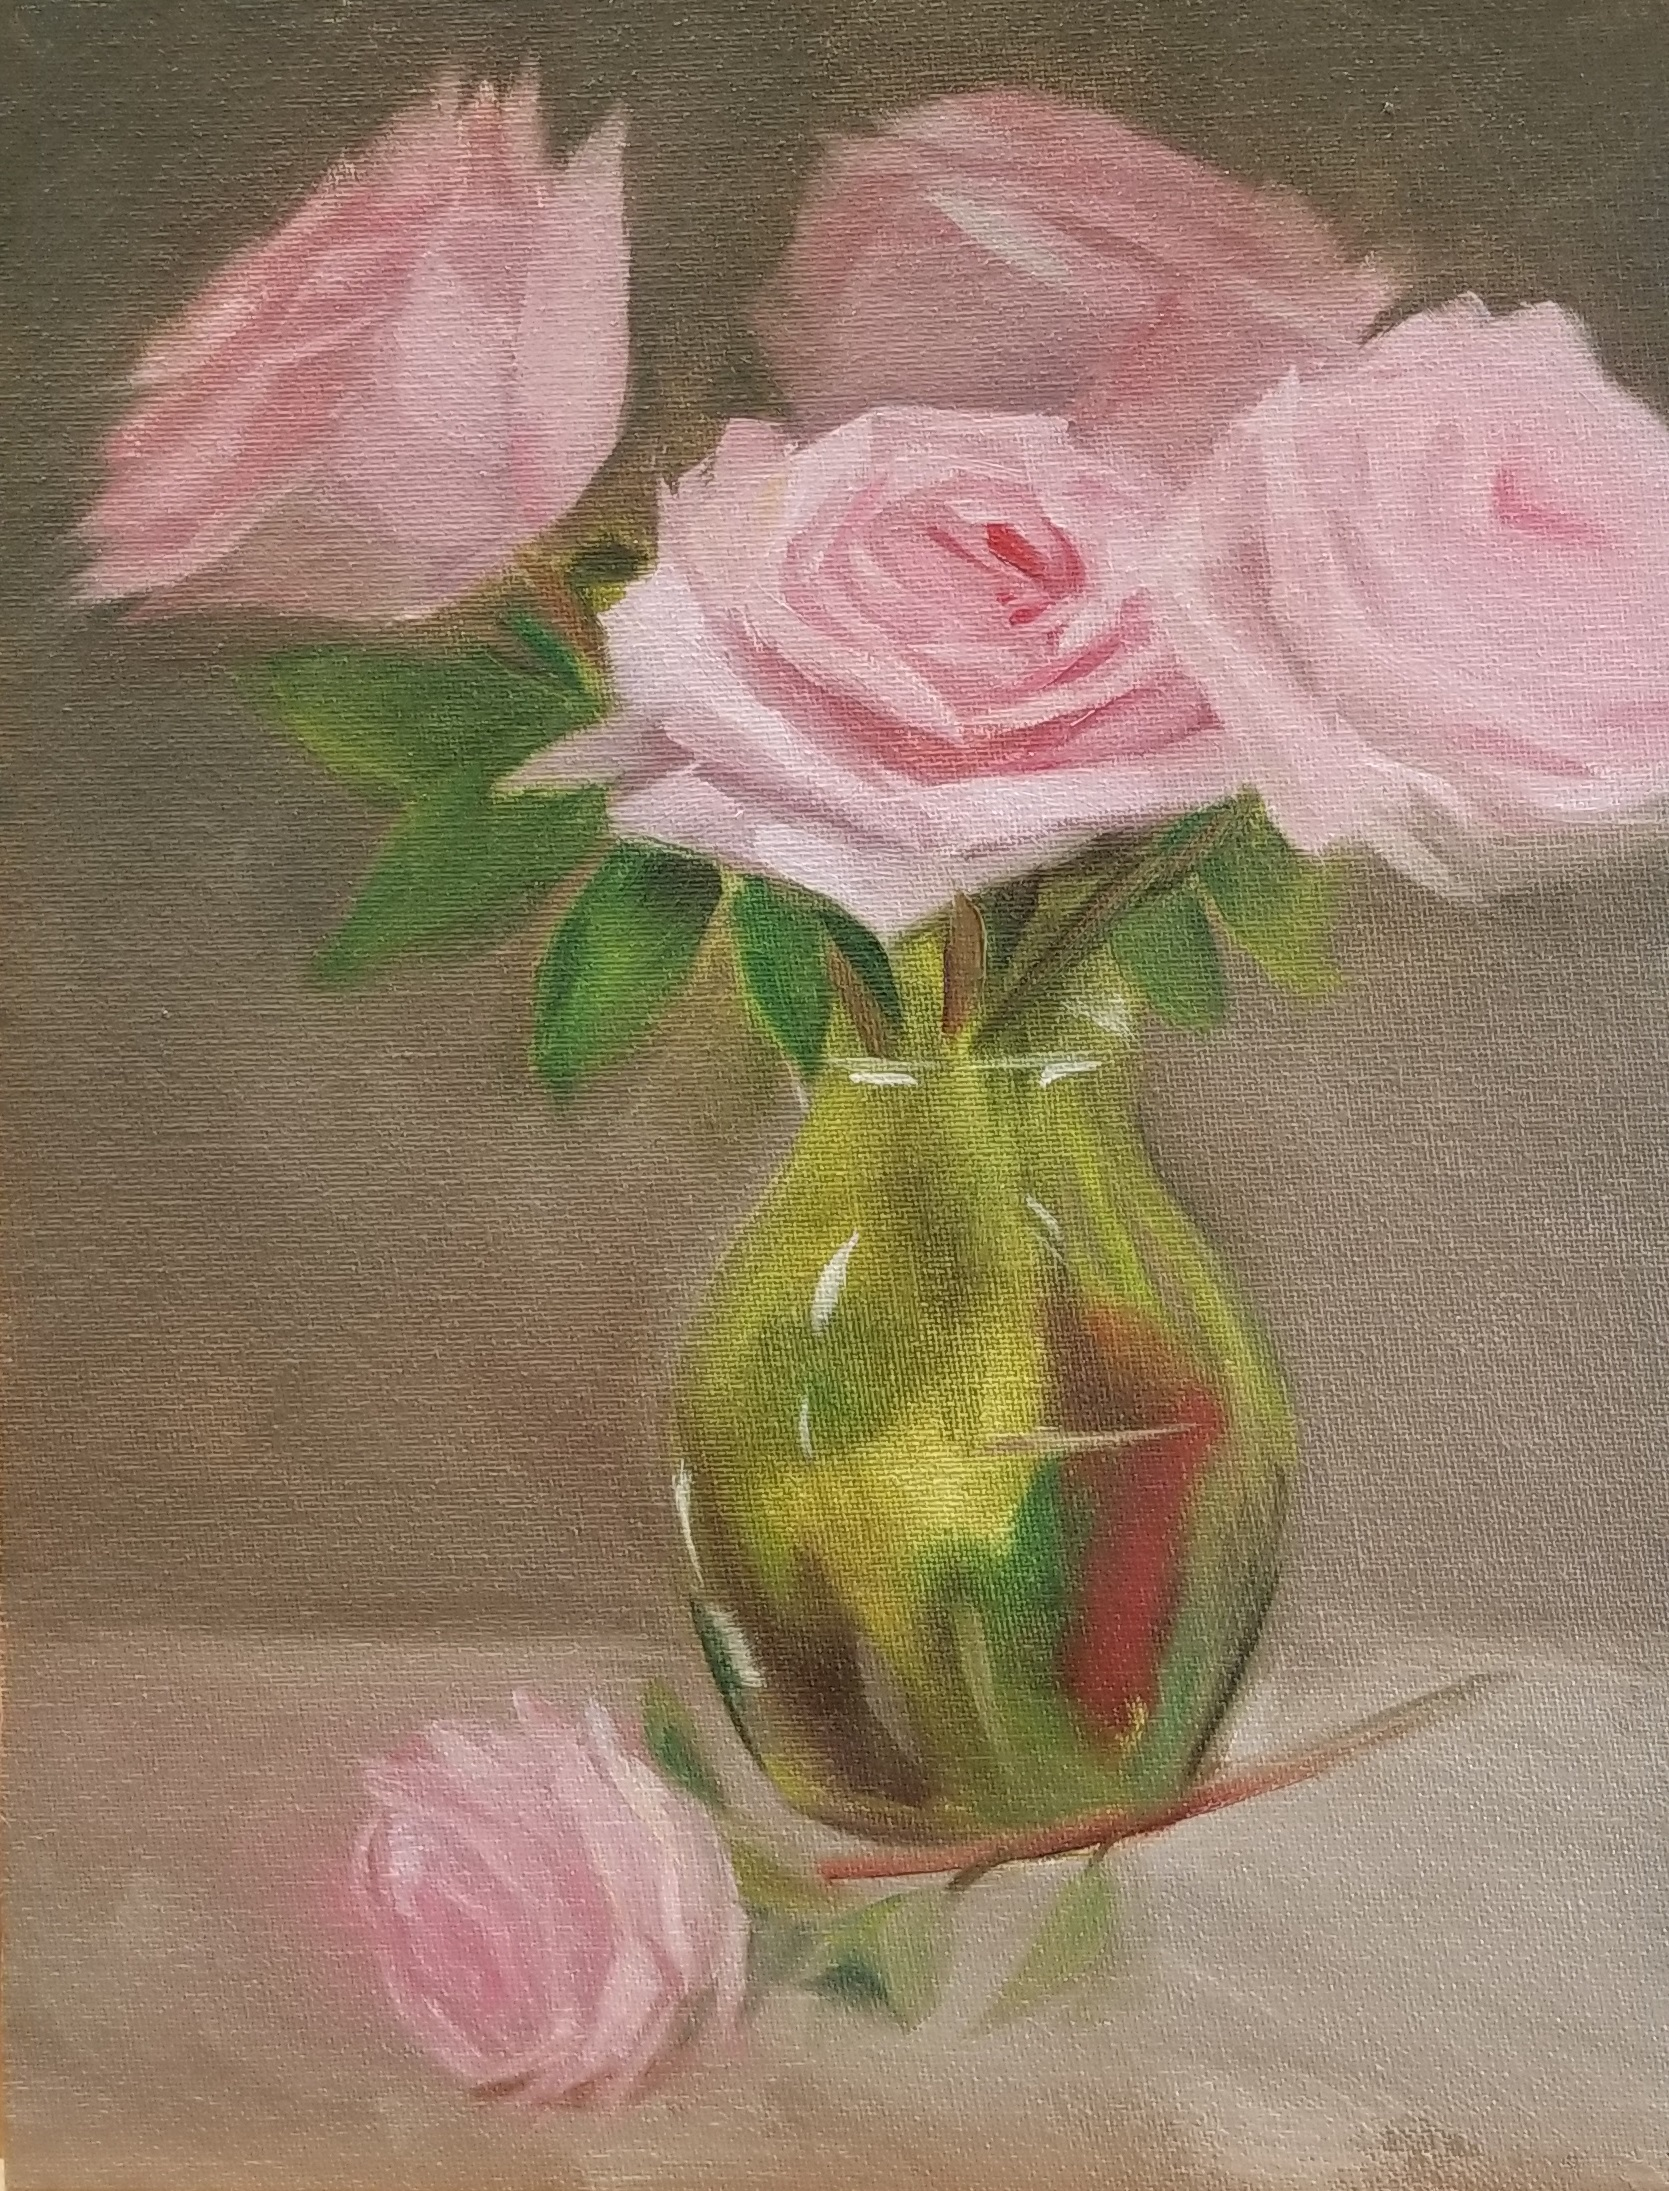 Pink Roses in a Vase 14x11 - oil on linen by Nancy Boyle-photo of .jpg